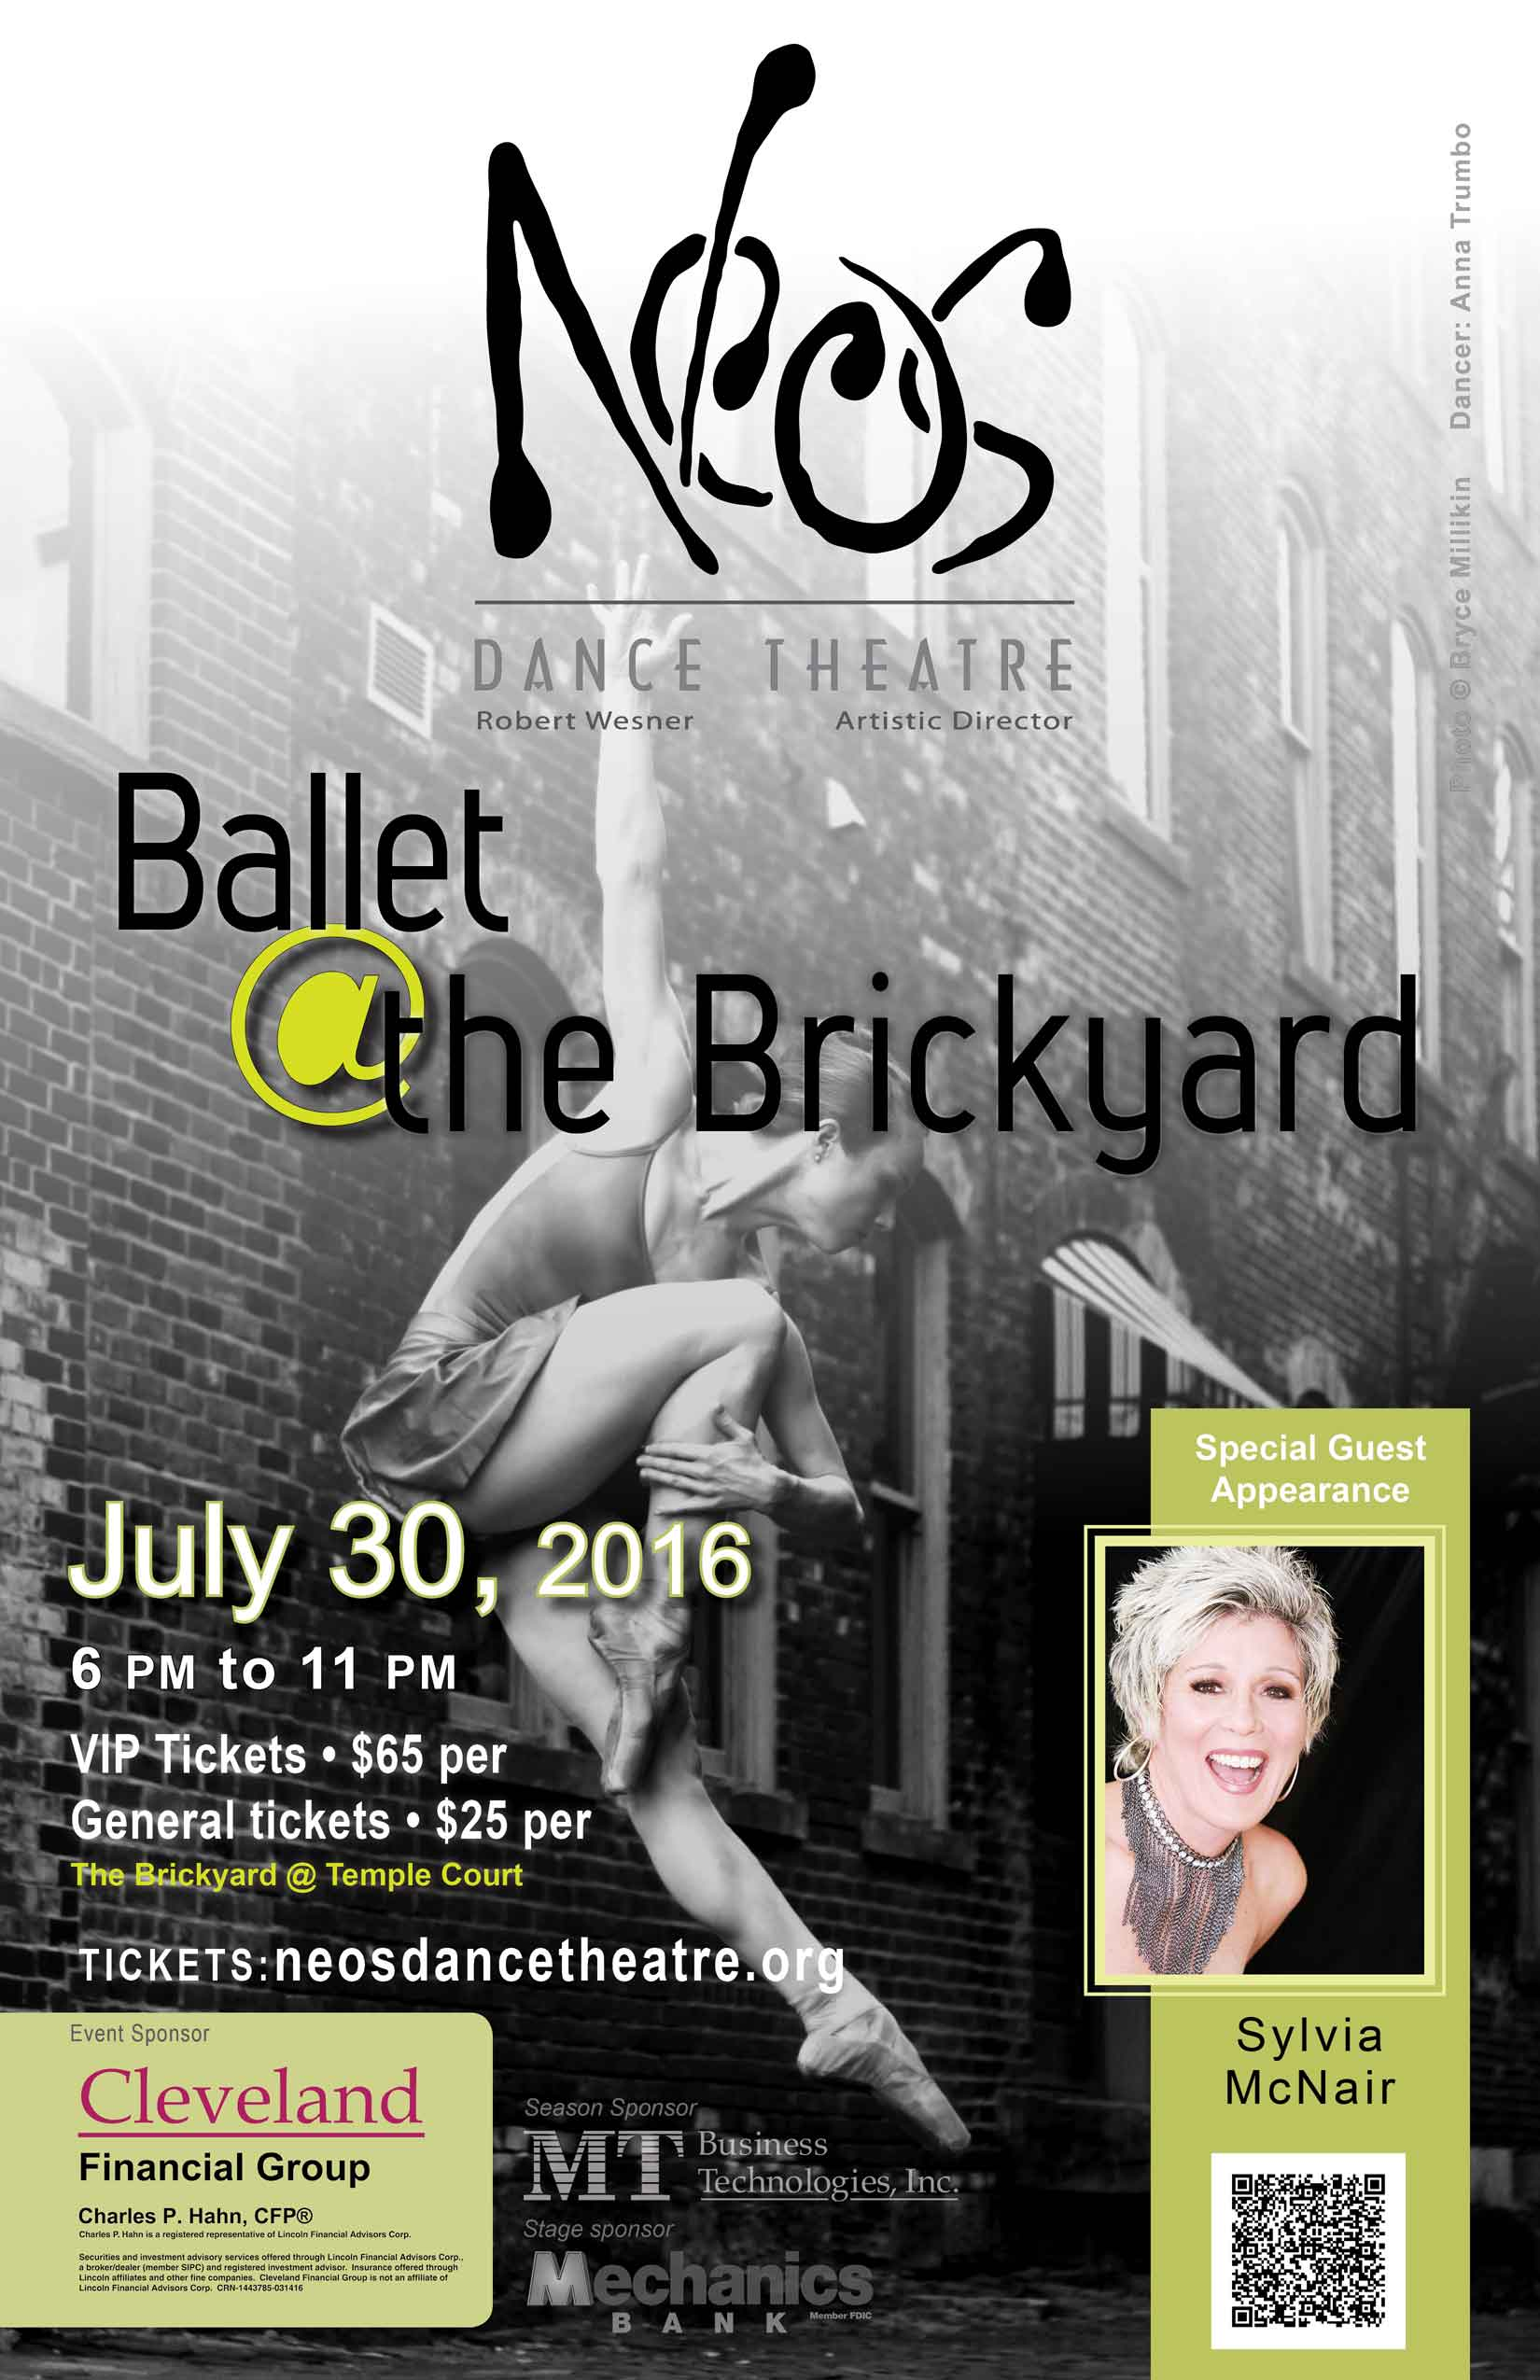 Ballet @ the Brickyard